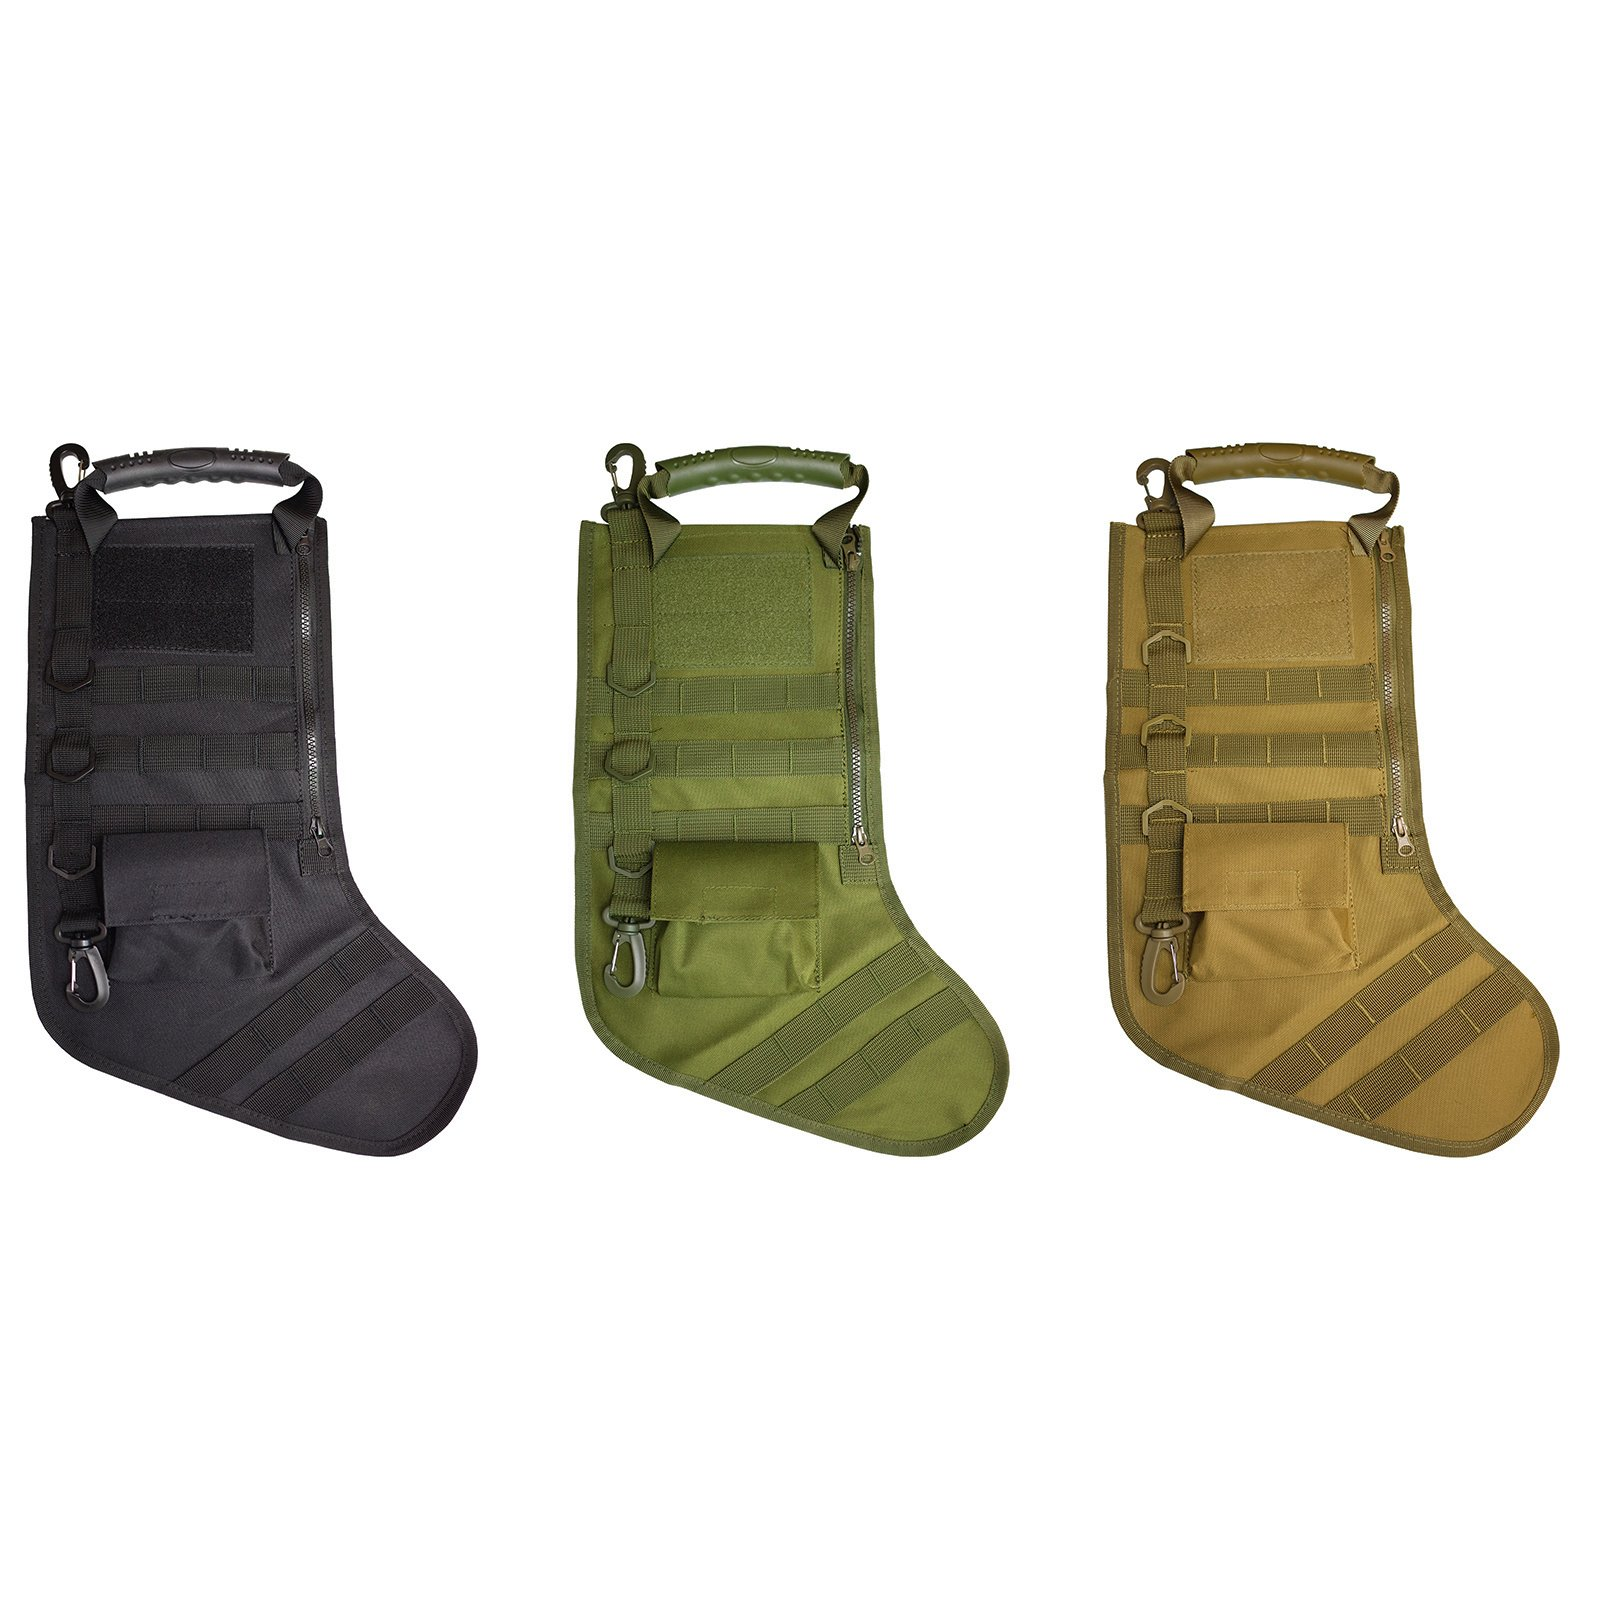 Set of 3 Tactical 20 inch Christmas Stockings for Man with Molle Gear - Black, Od Green, Khaki